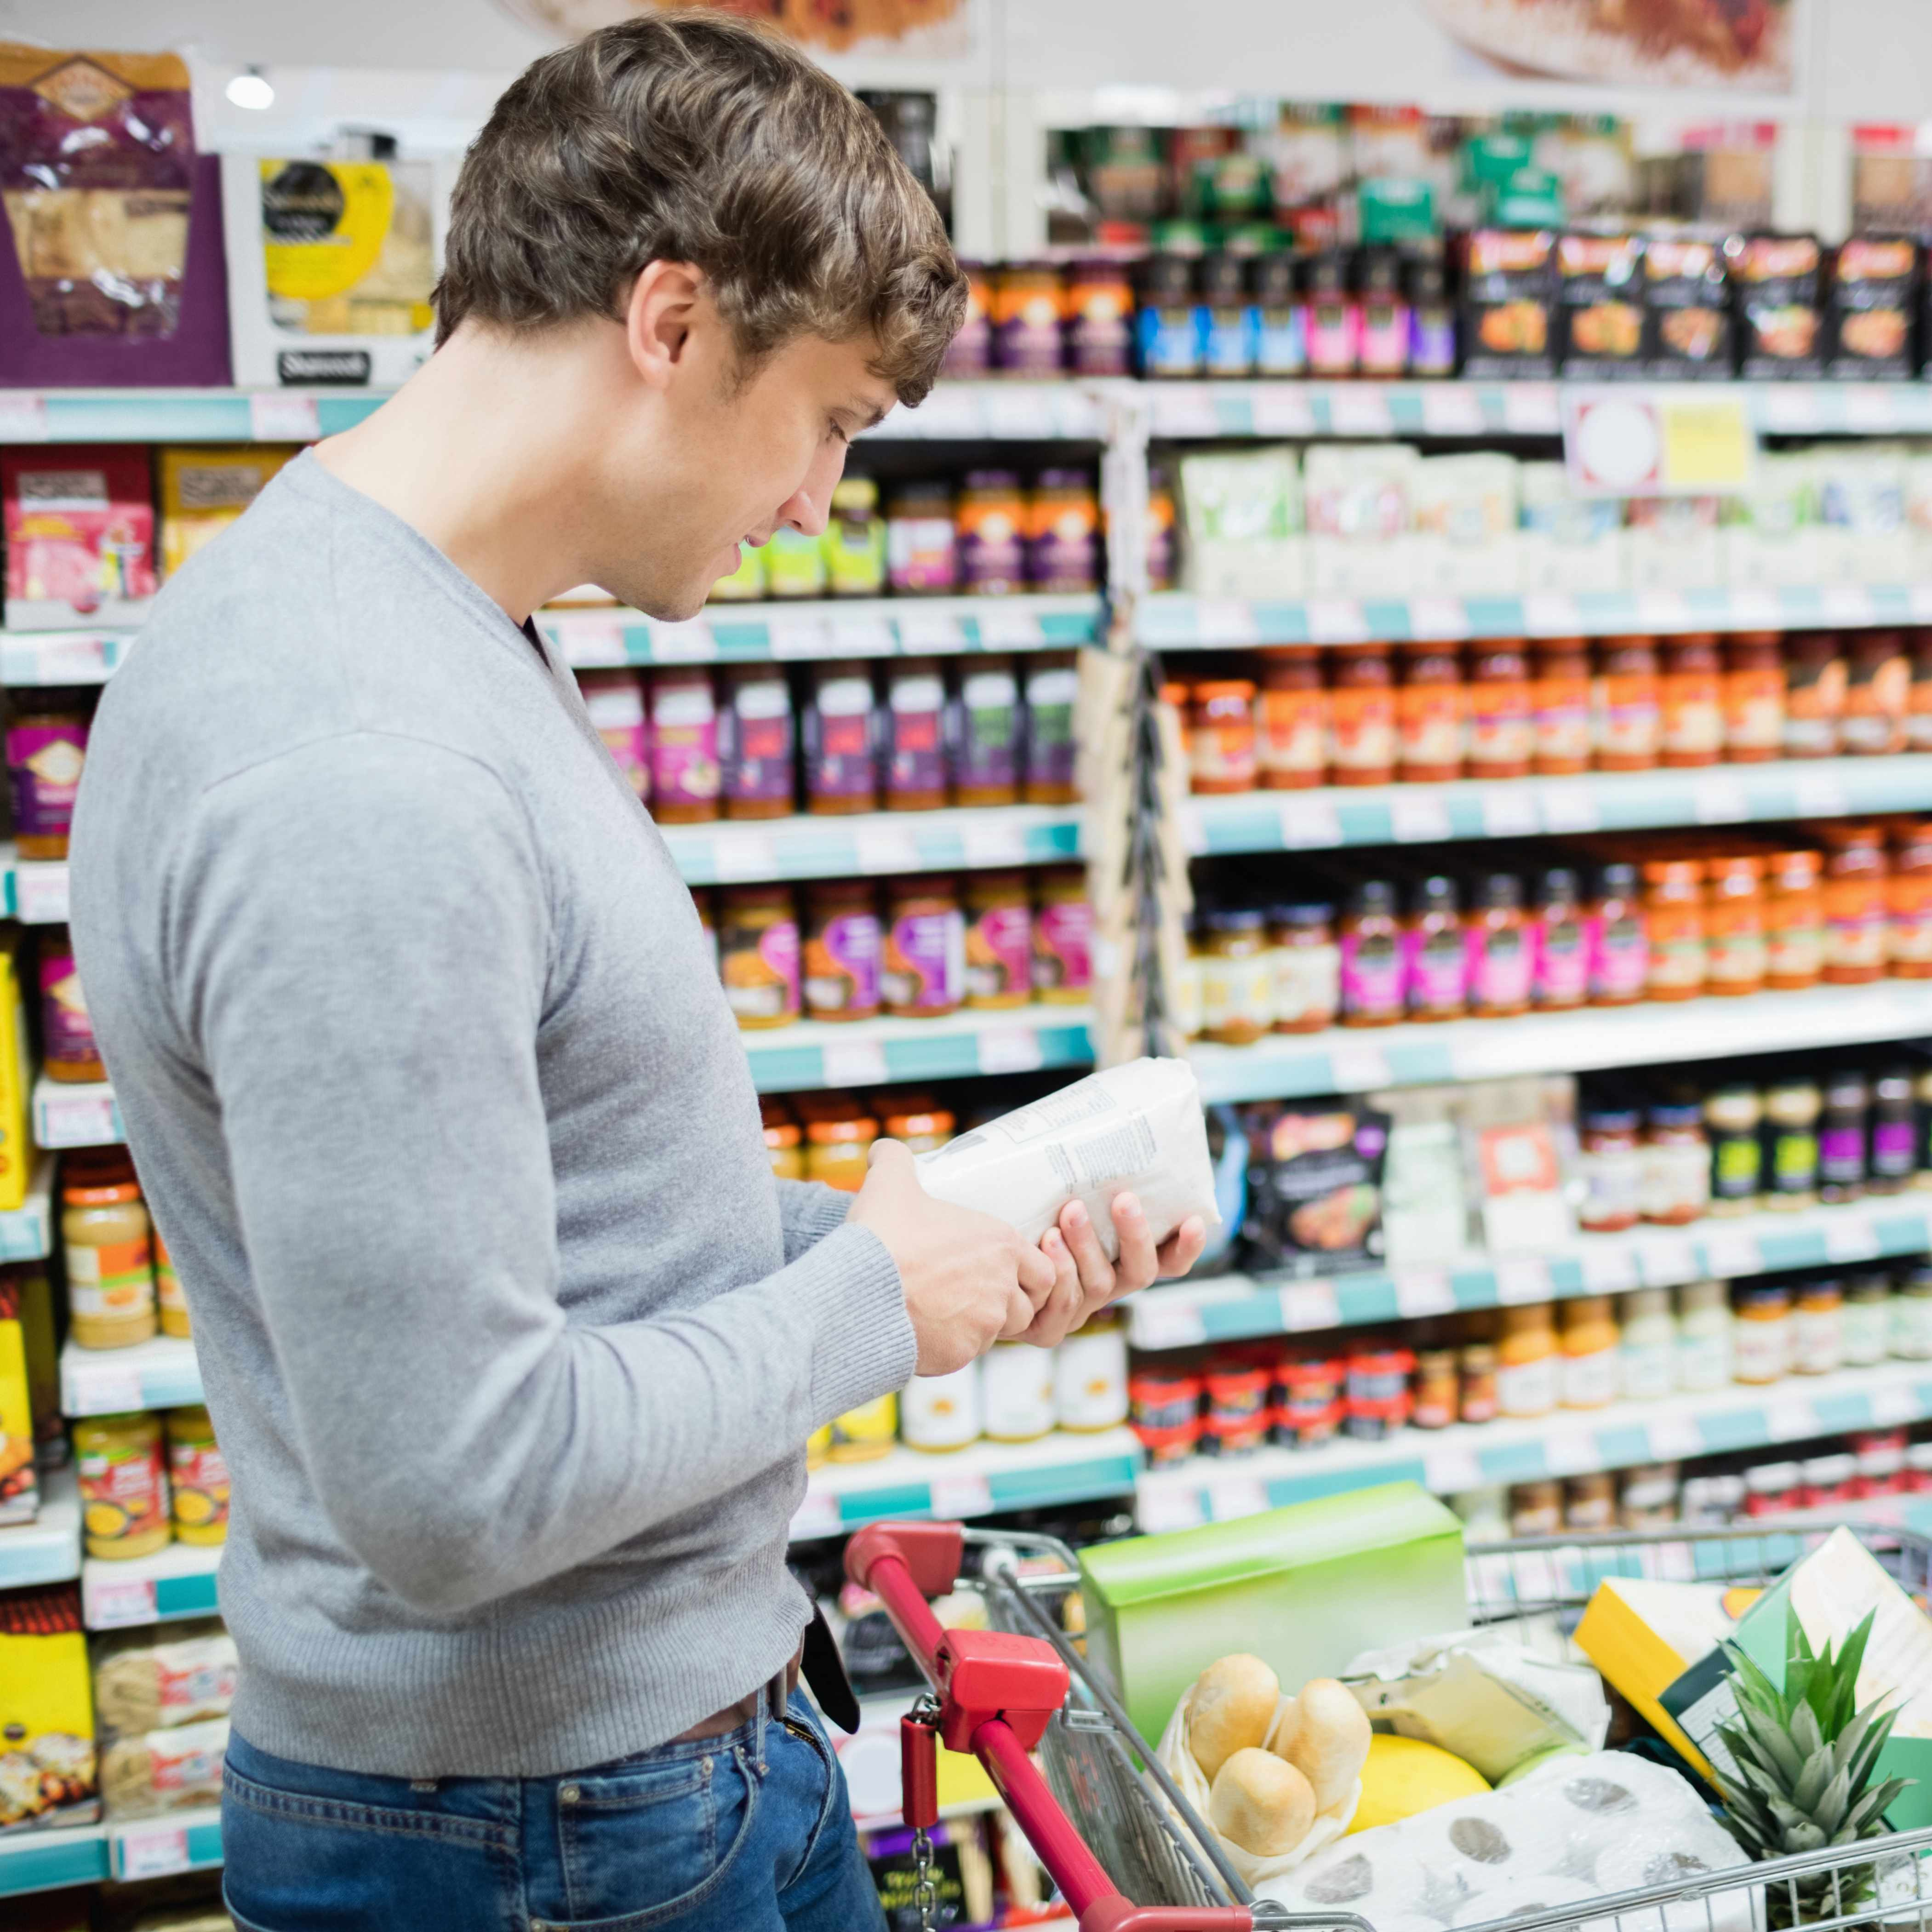 a young man shopping in a grocery store holding a can and reading the nutrition food label